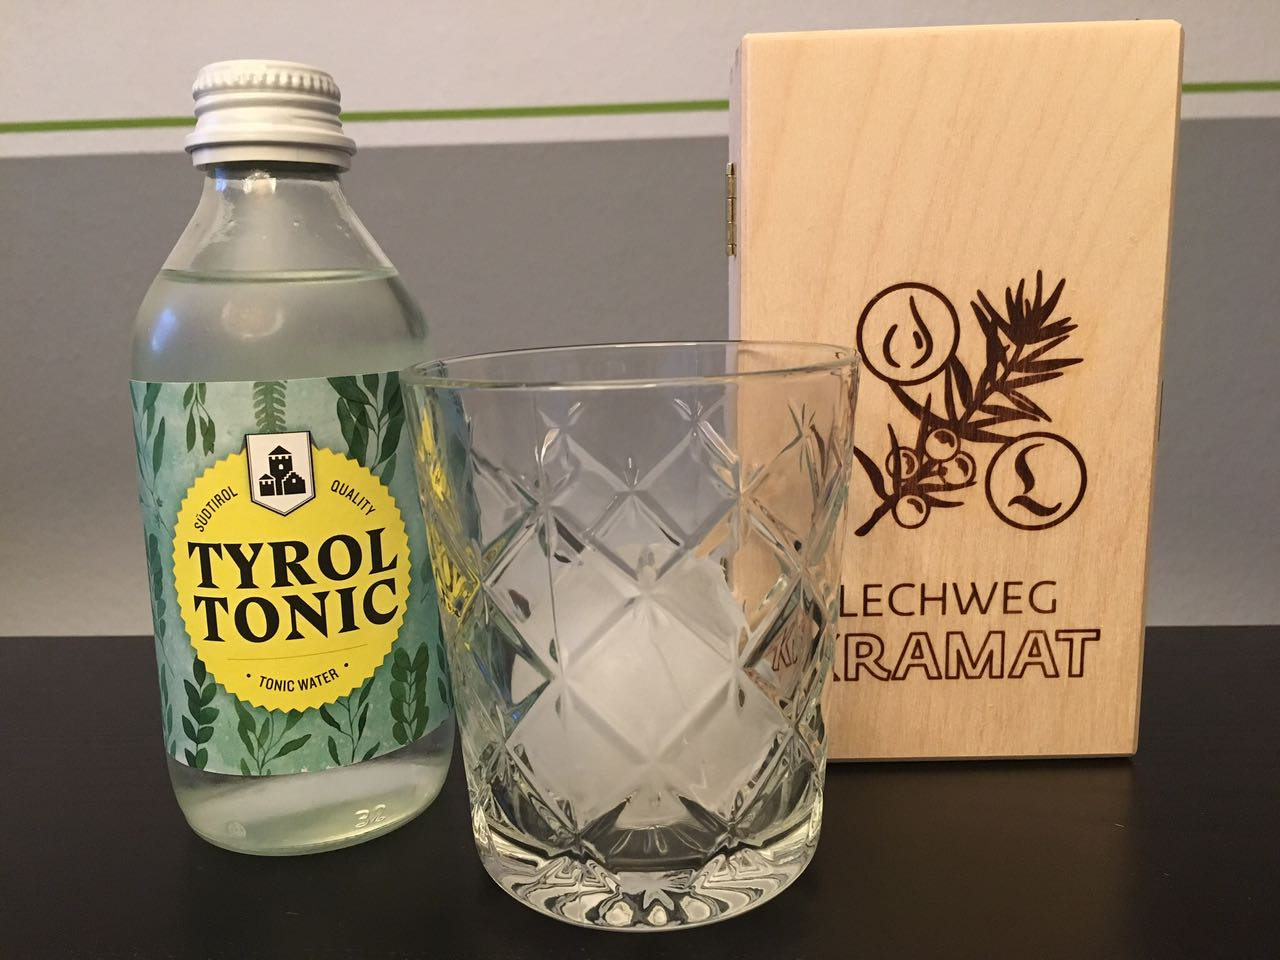 Lechtal Holzbox und Tyrol Tonic